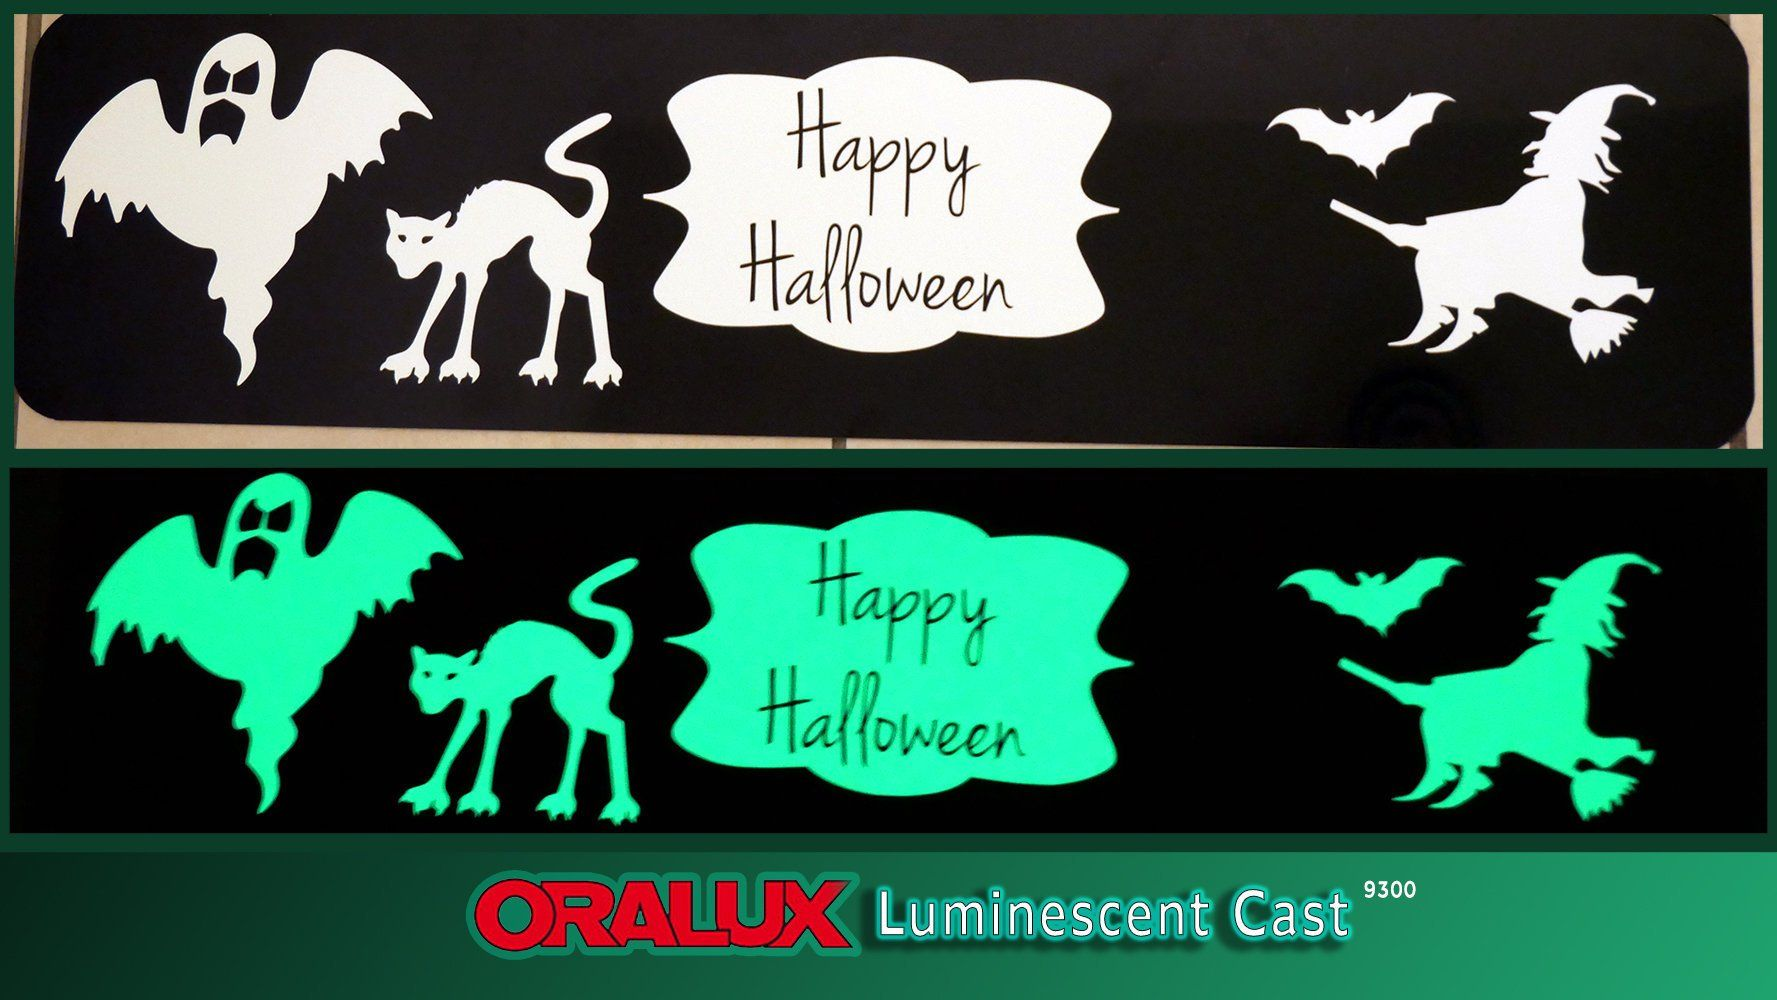 12 X 5 Foot Roll Oracal 9300 Oralux Luminescent Vinyl Glow In The Dark By Onesourcestore On Etsy Sticker Sign Oracal Vinyl Sticker